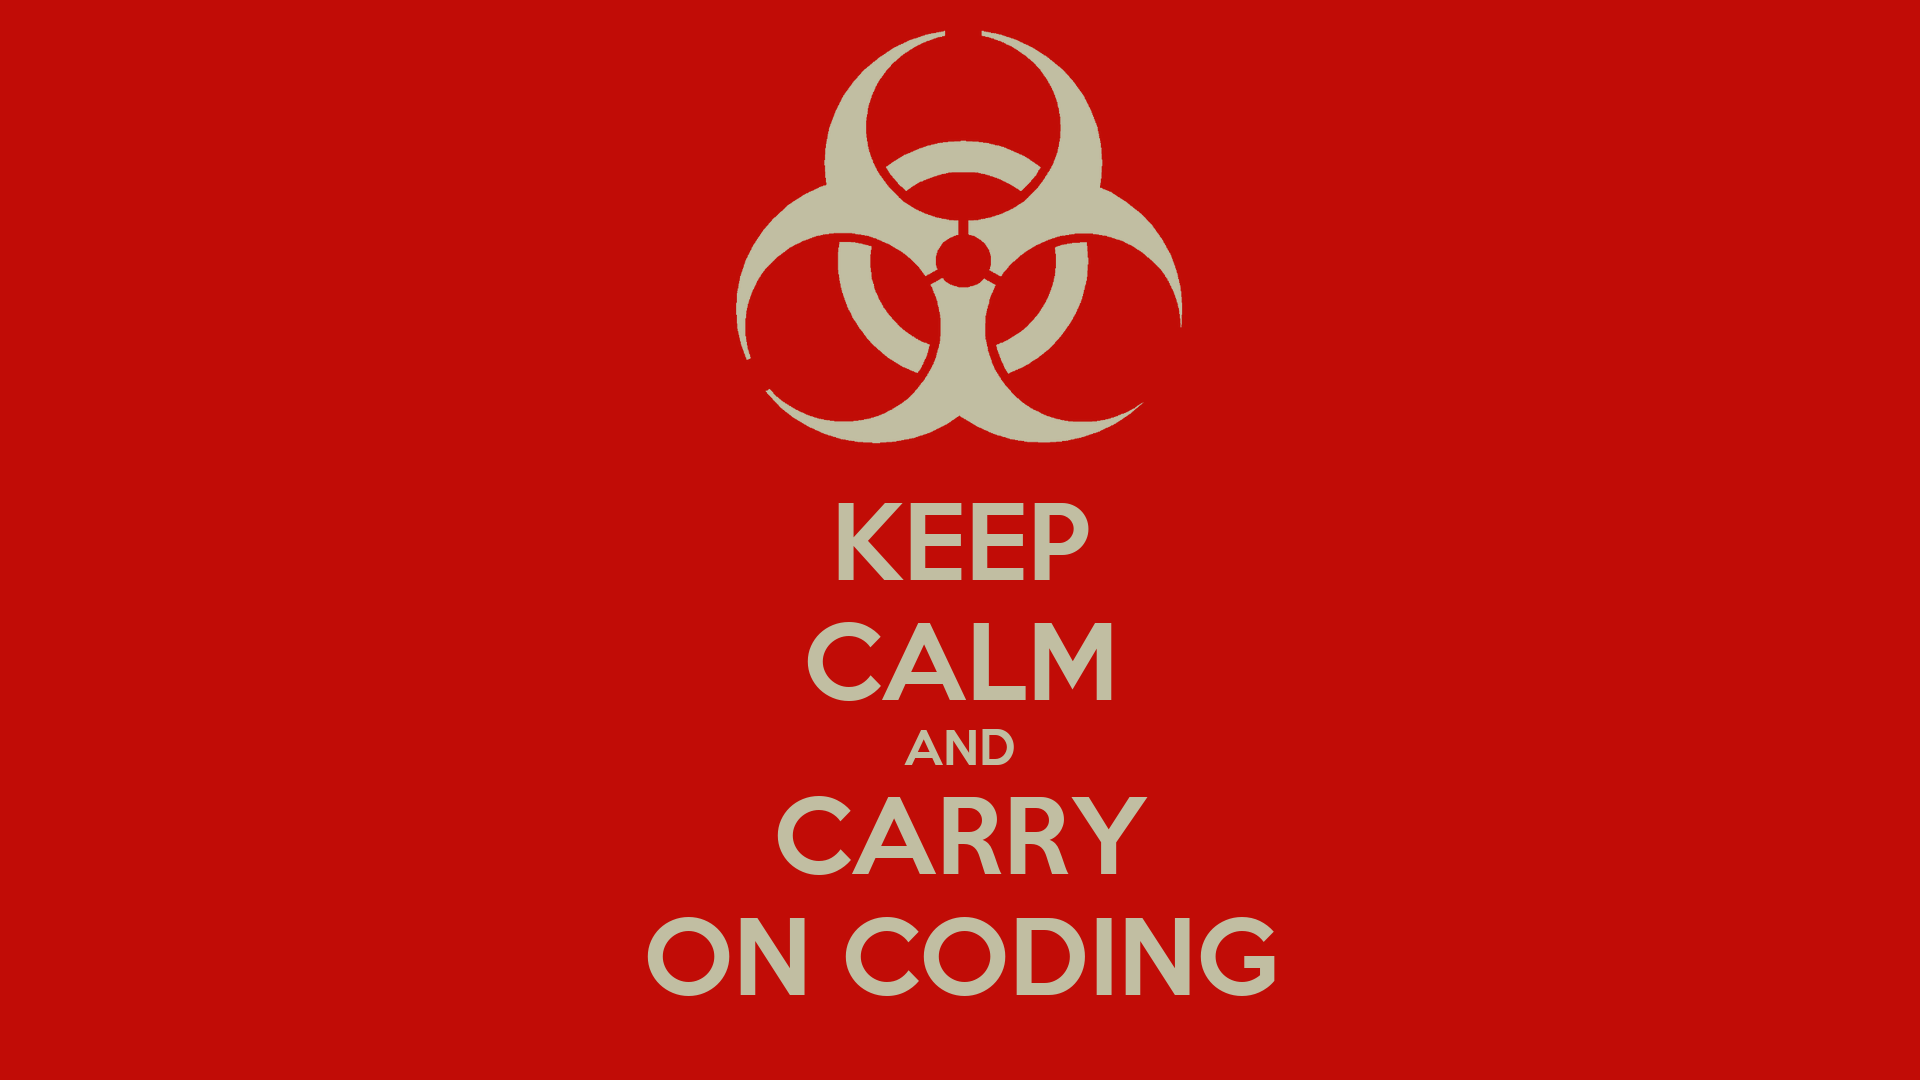 Keep Coding Wallpaper Keep Calm And Carry on Coding